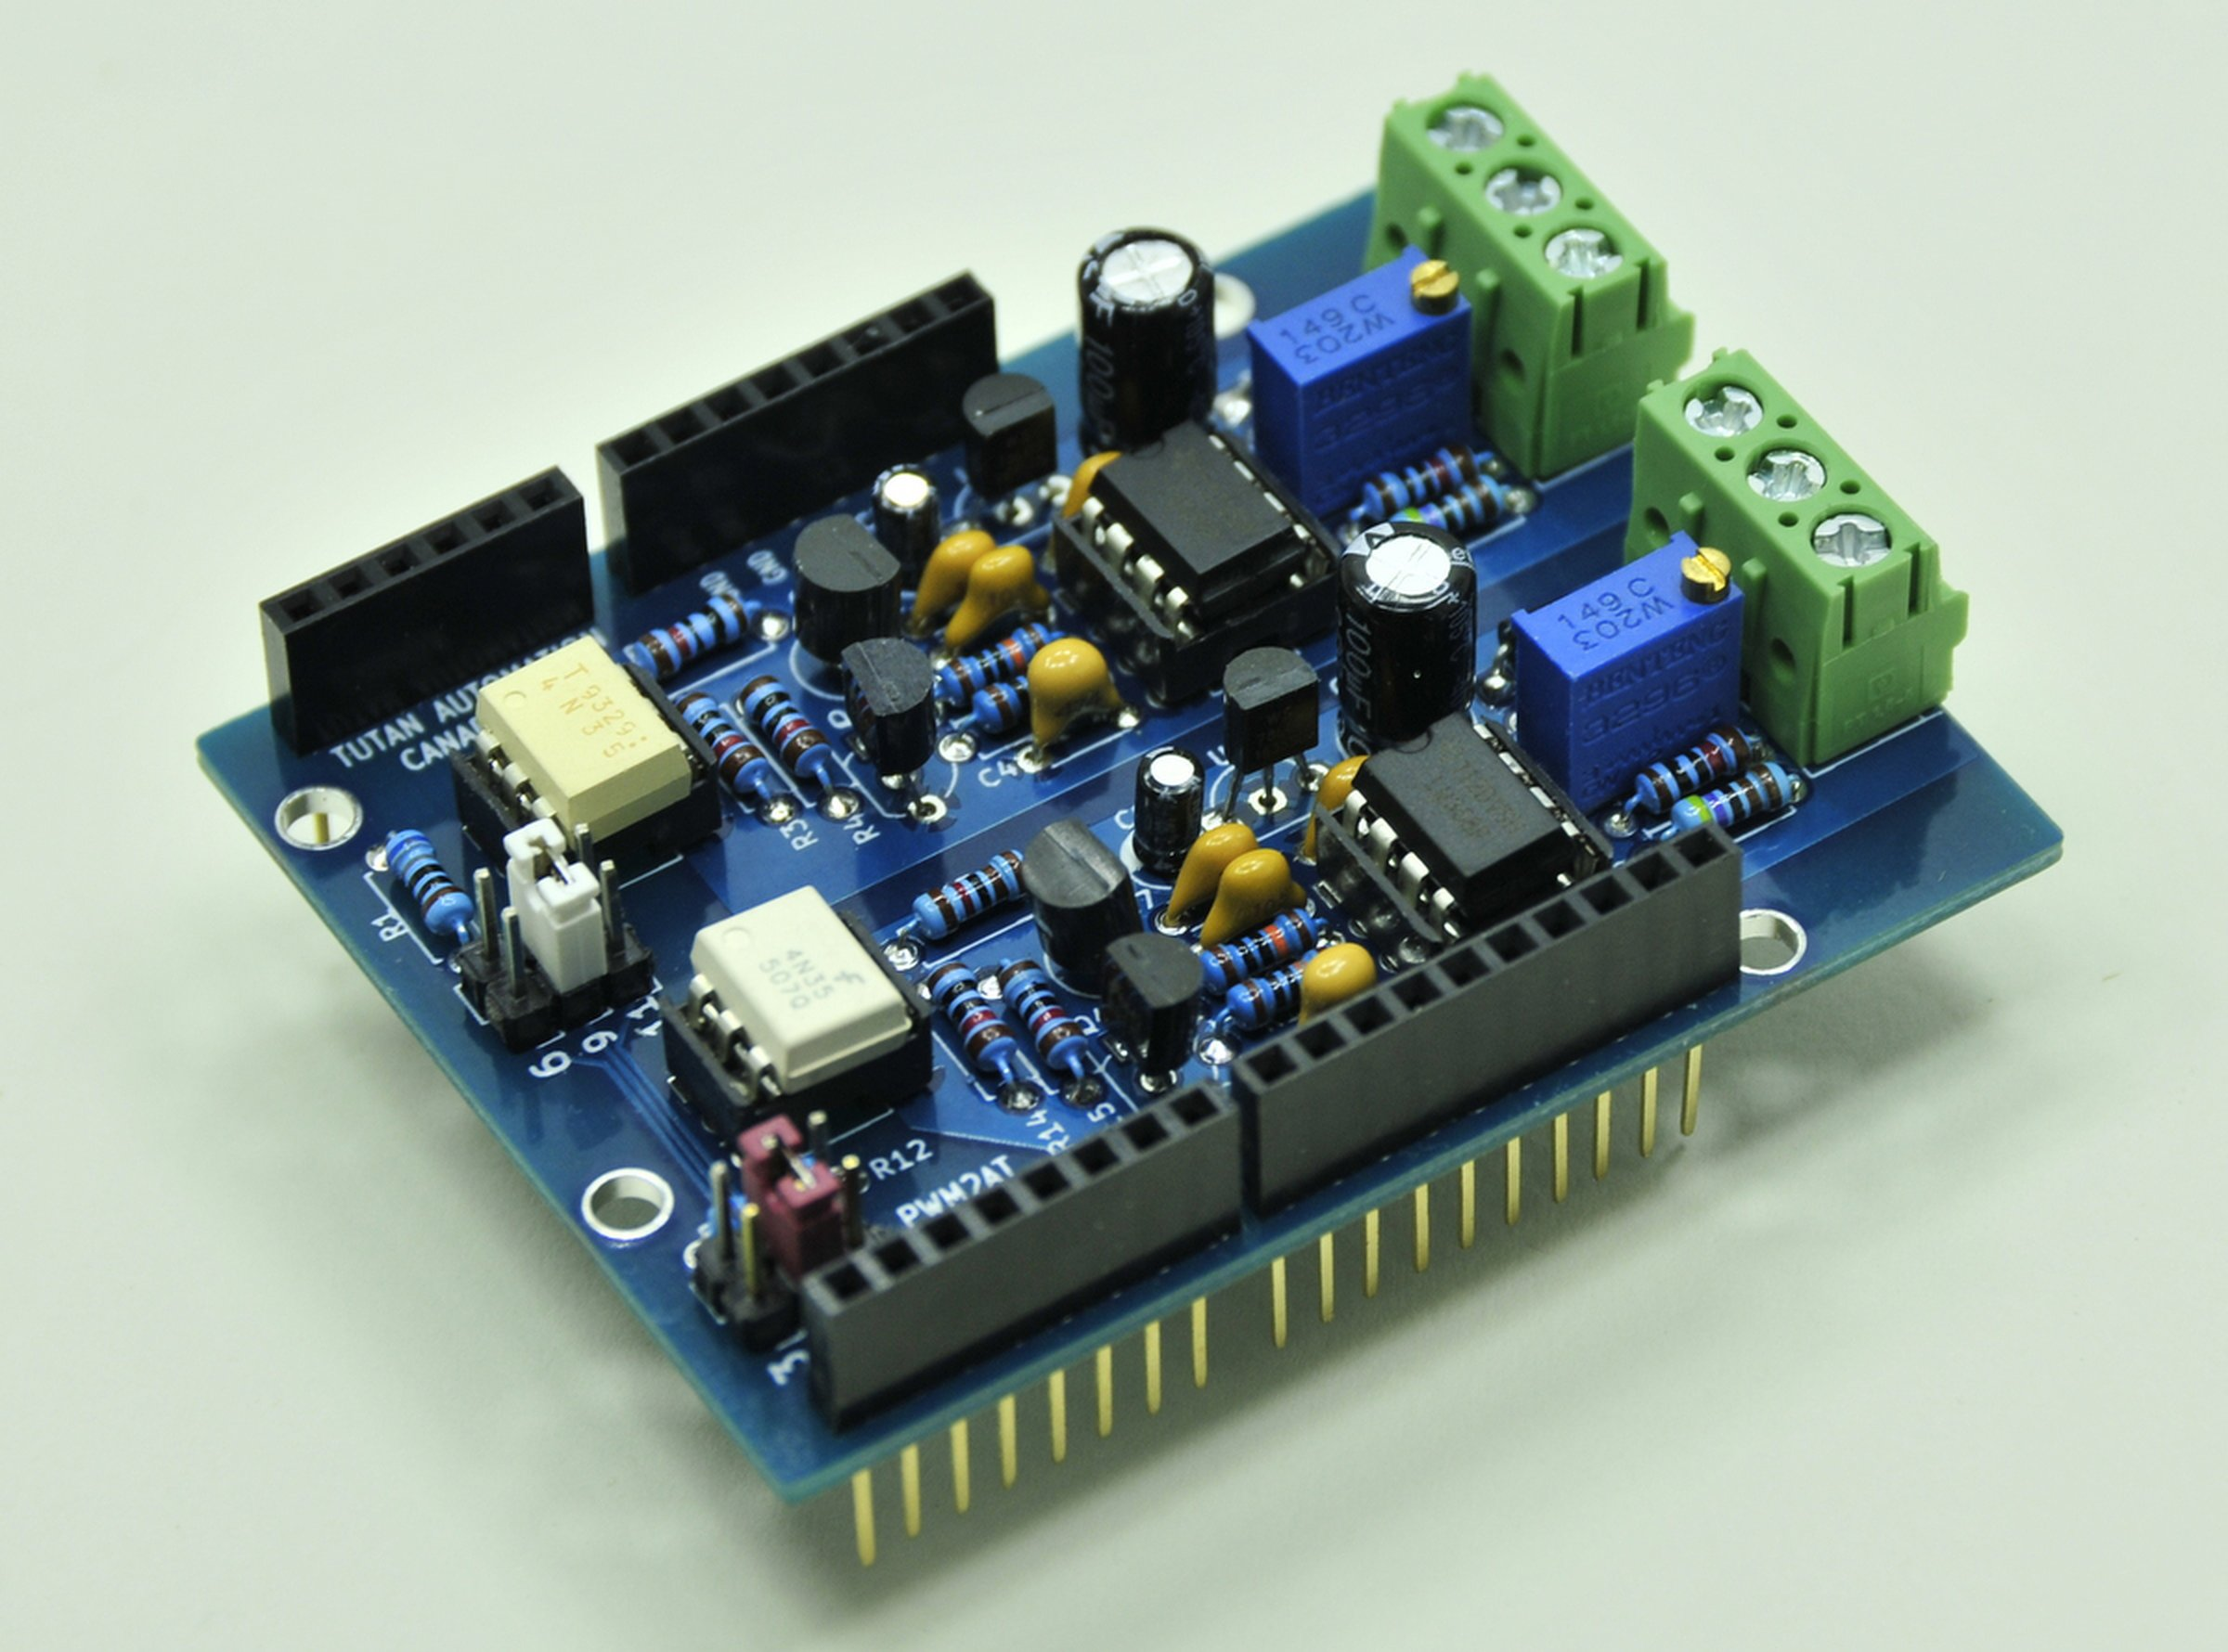 Isolated Pwm Analog Output For Arduino From Tutan On Tindie Electronics Forum Circuits Projects And Microcontrollers 4